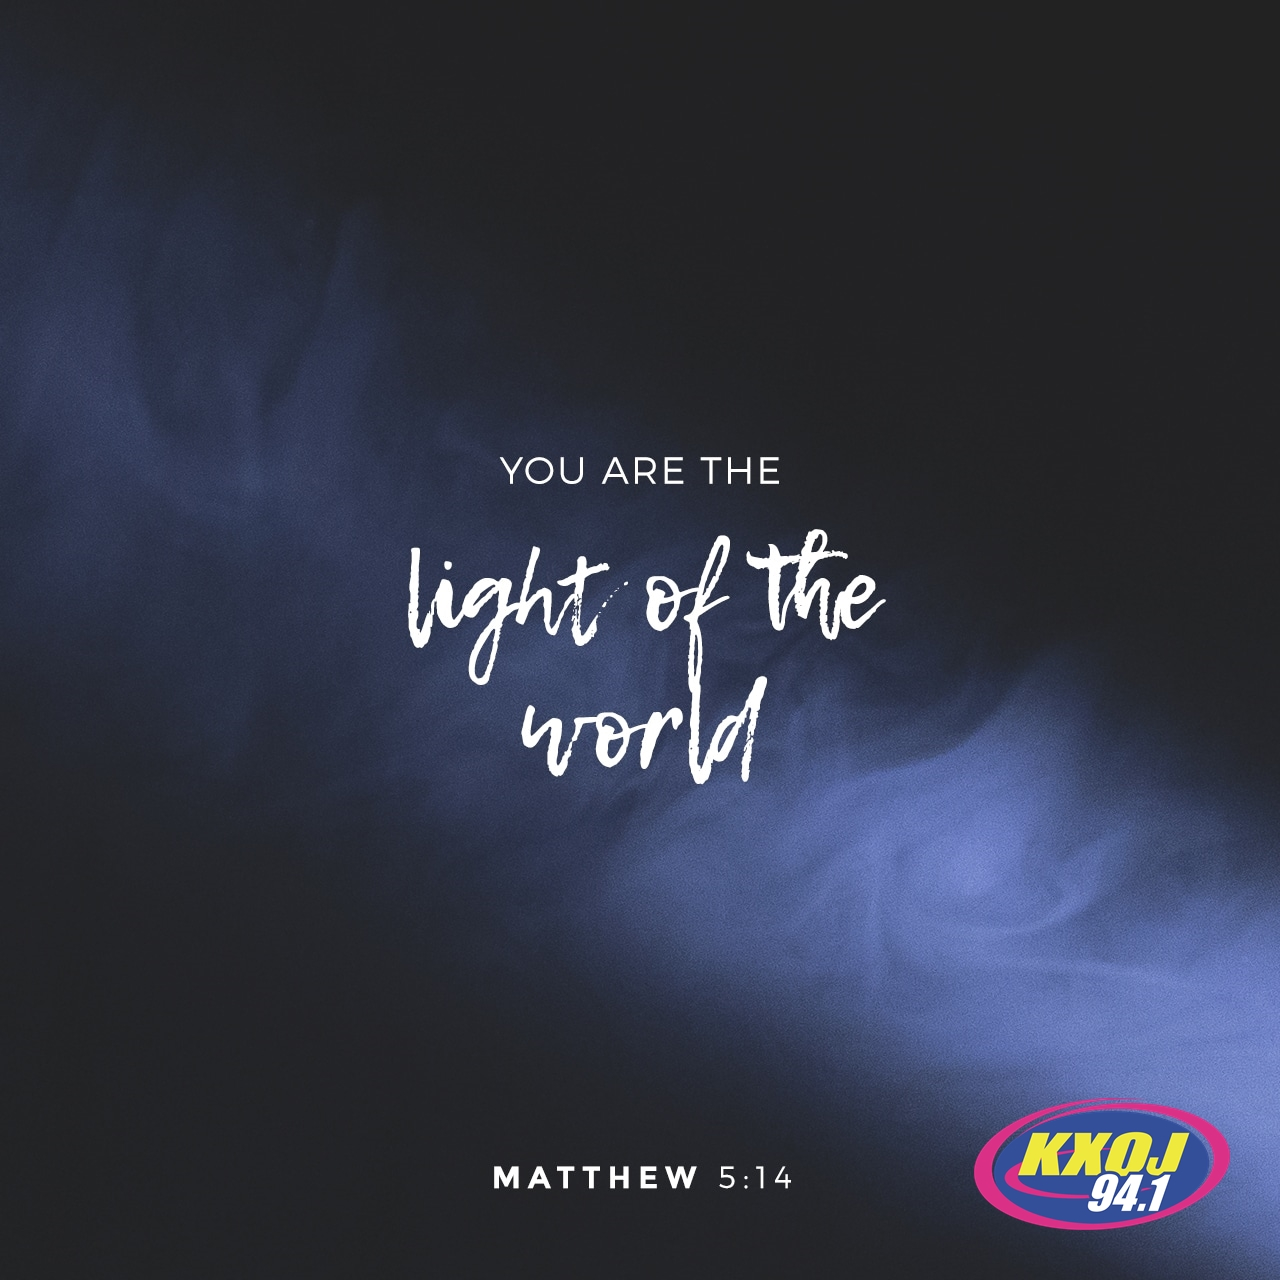 May 17th - Matthew 5:14